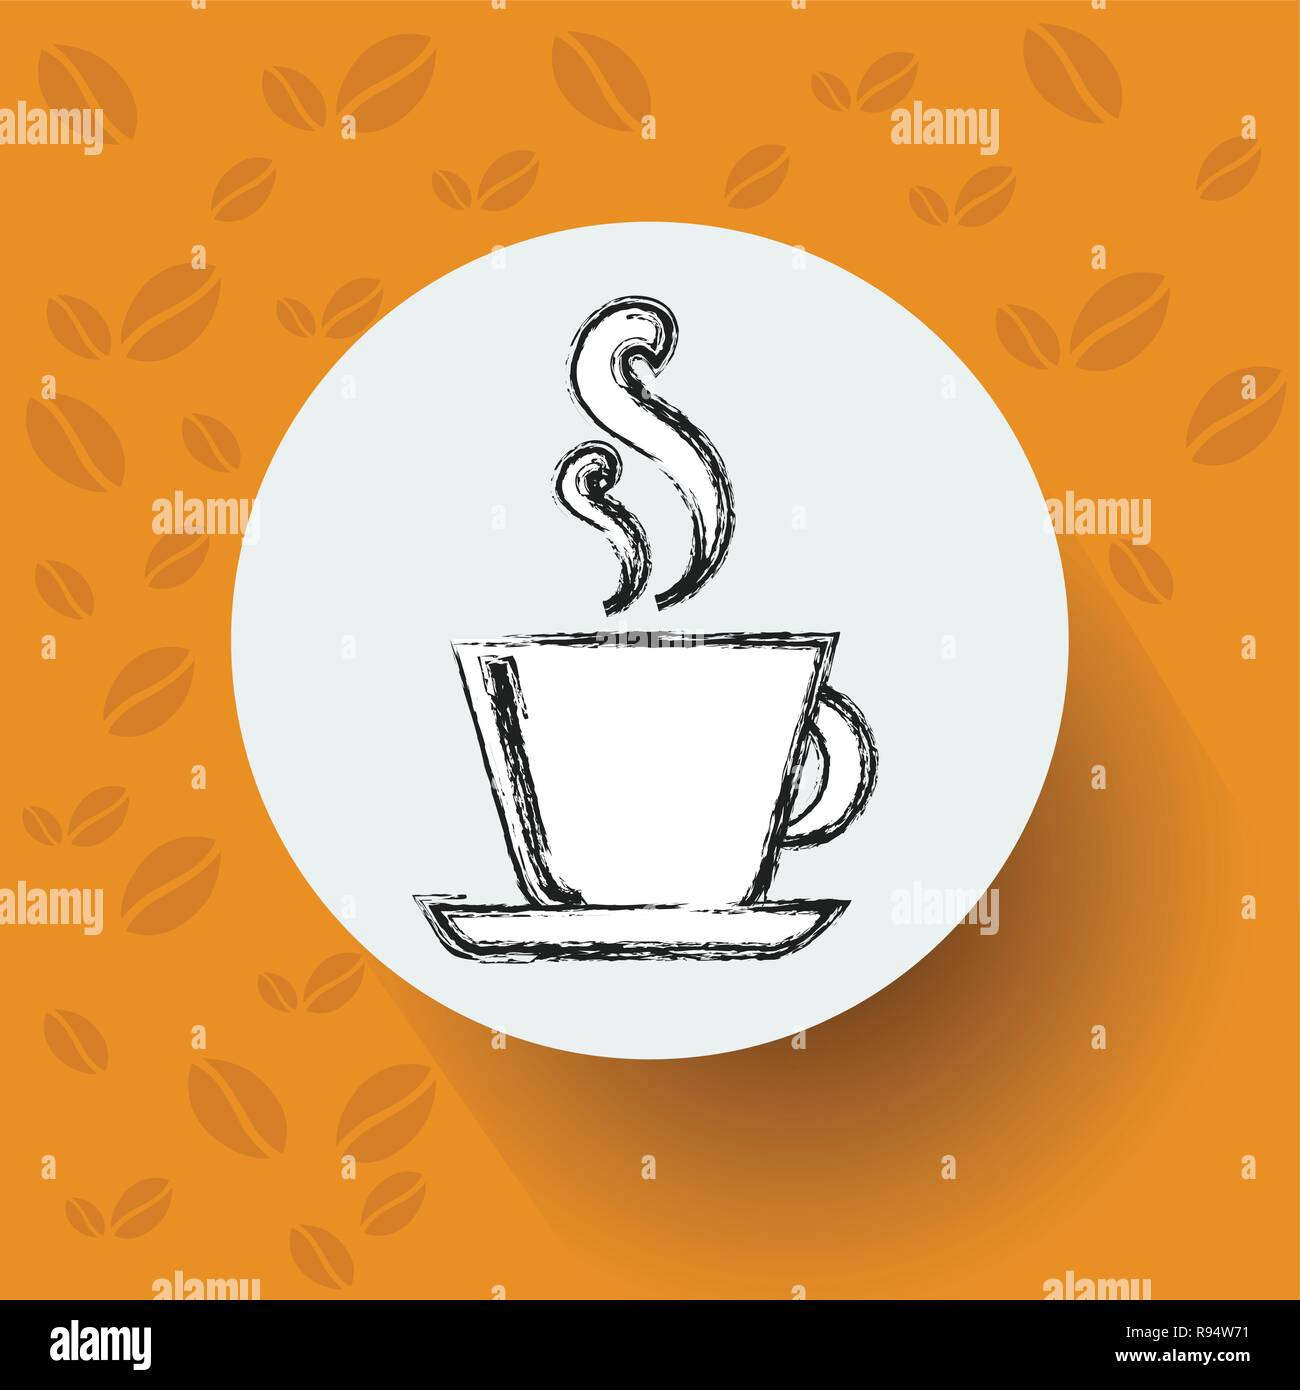 Hand Drawn Sketch Coffee Cup Vector Illustration - Stock Image